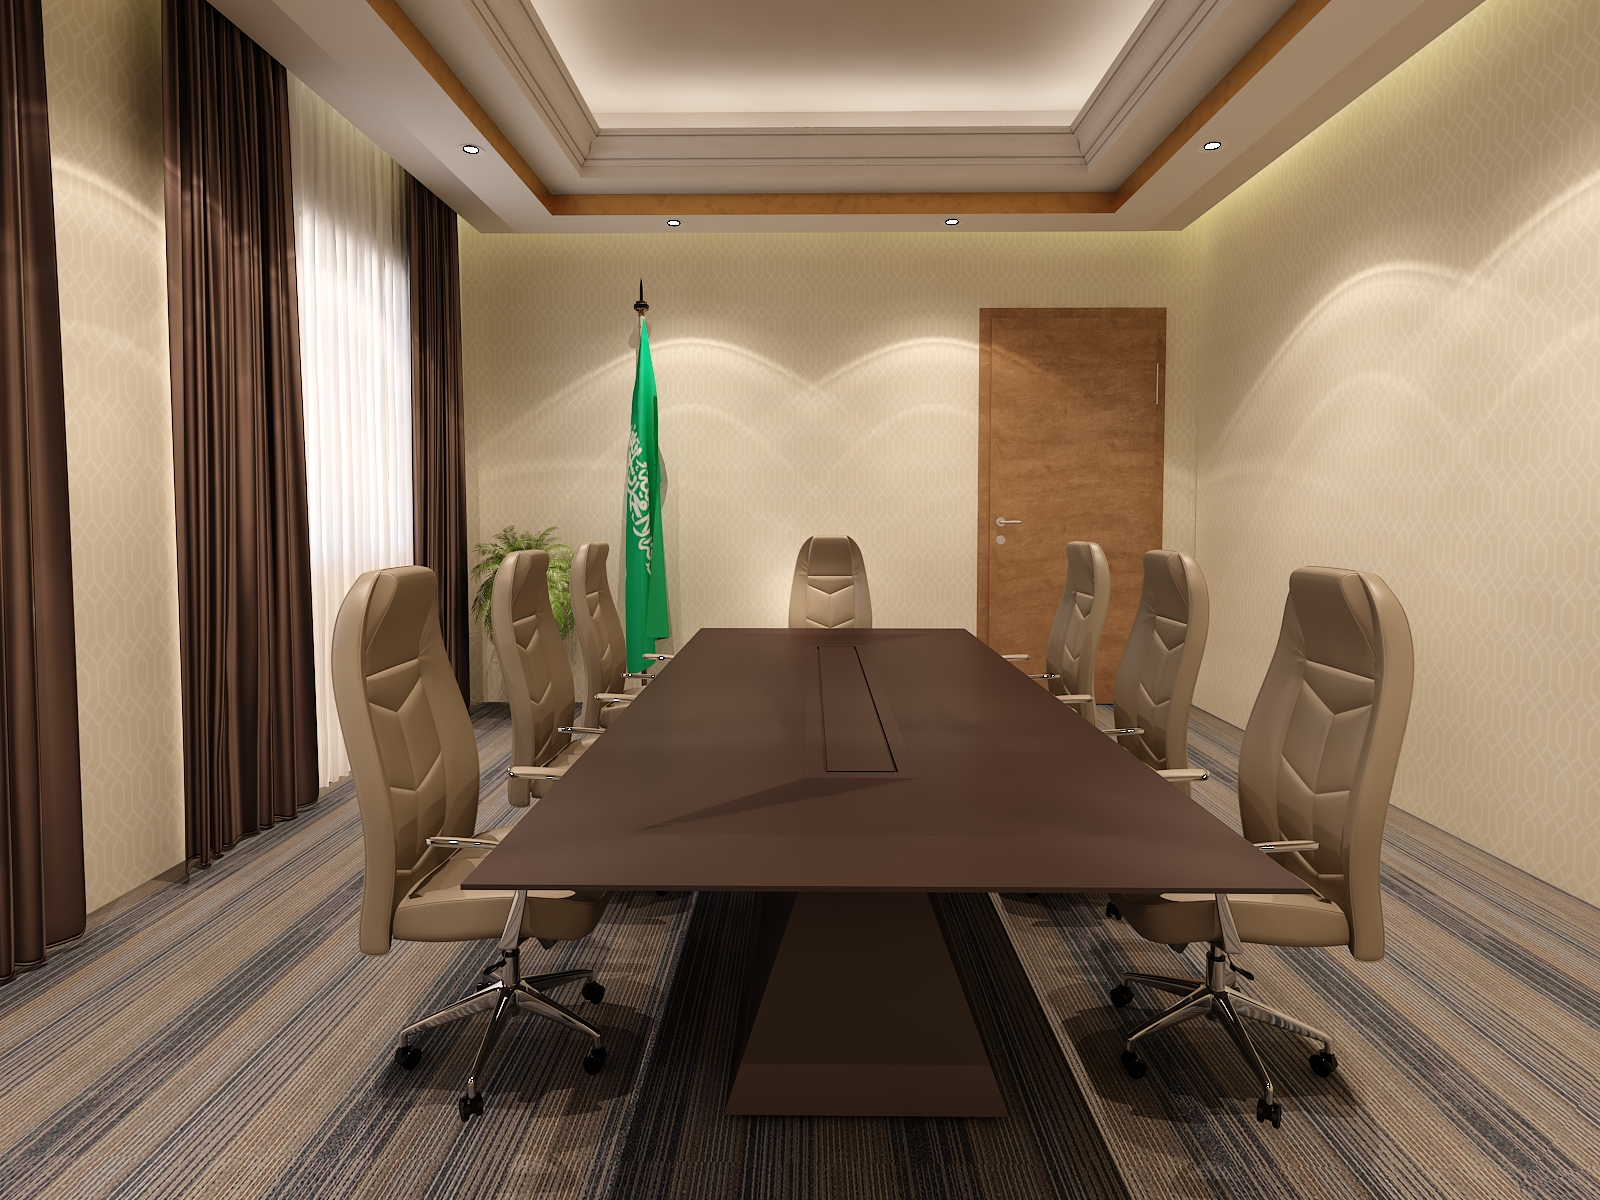 http://qimam.co/wp-content/uploads/2021/03/Al-Jubail-Governorate-Building7.jpg